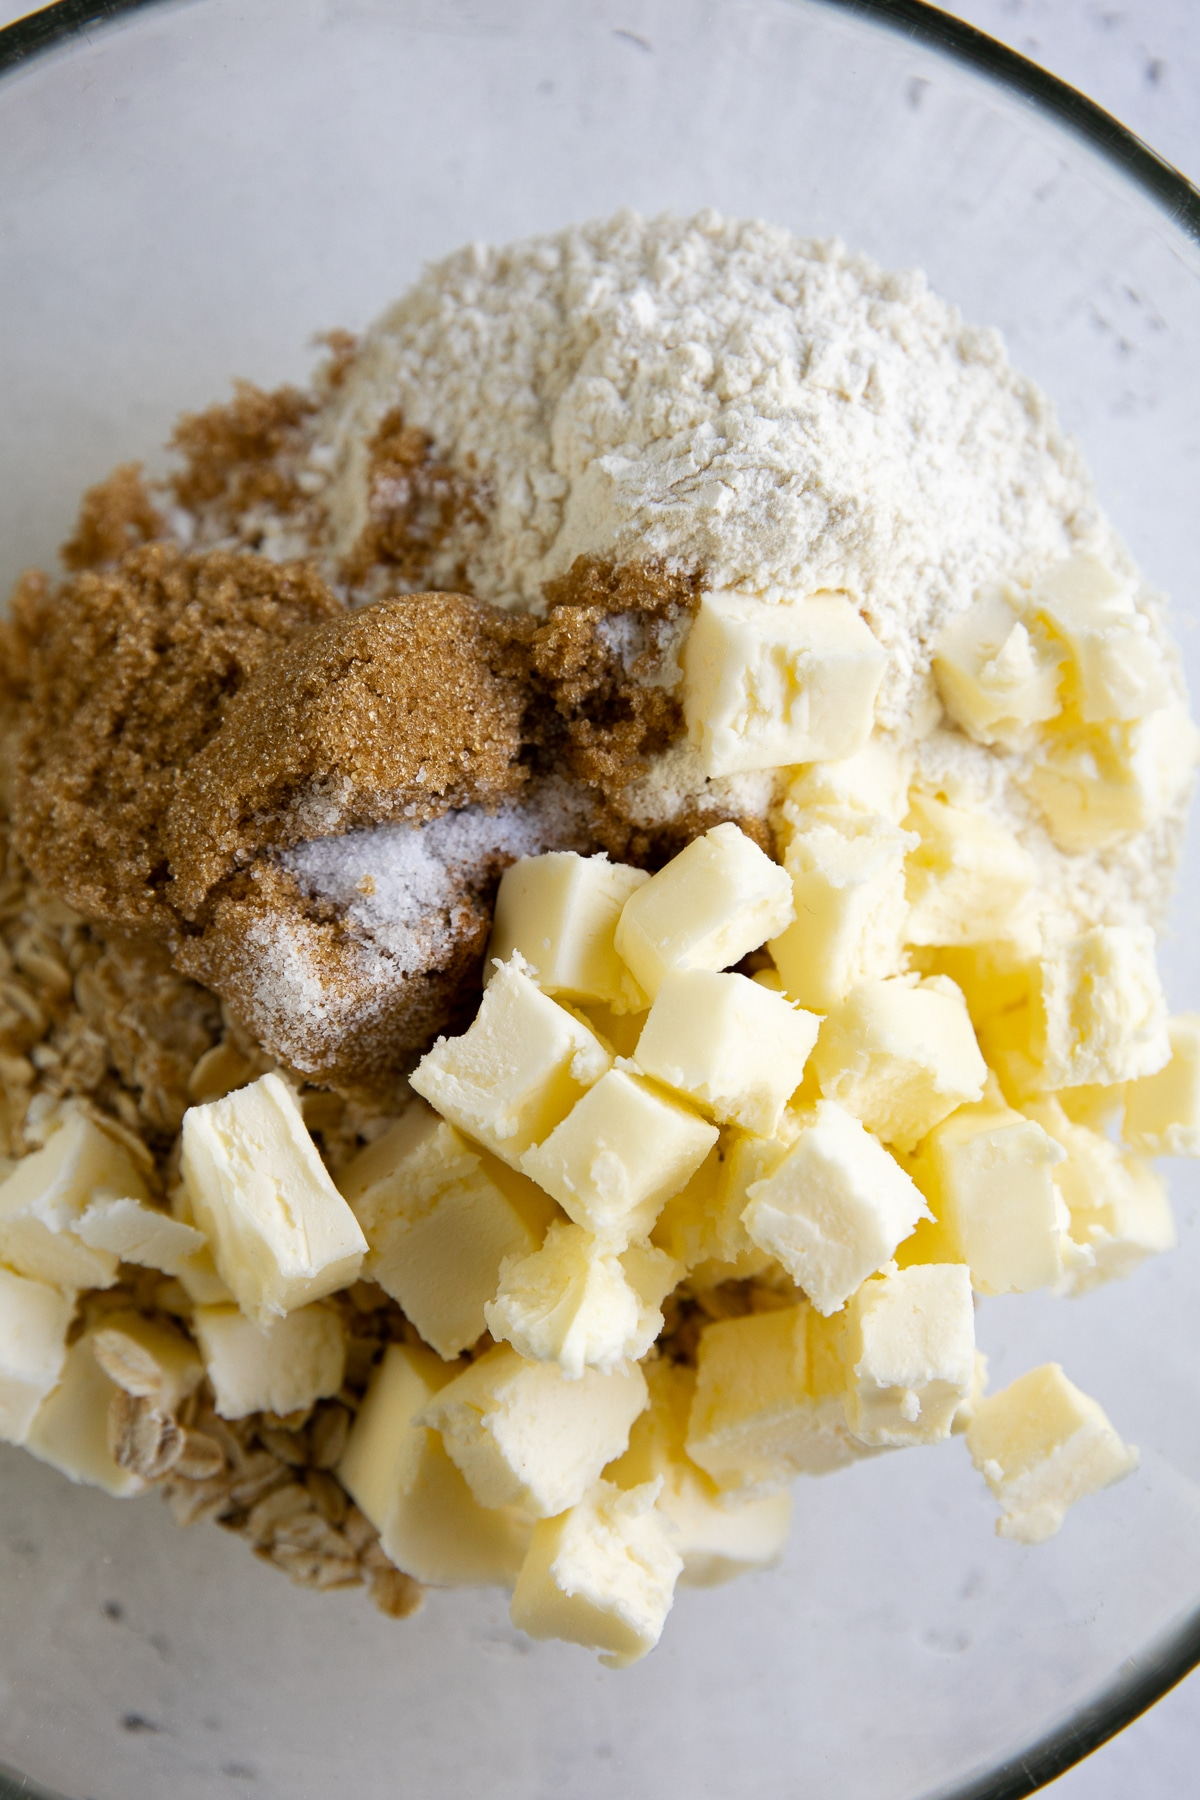 Mixing bowl filled with flour, brown sugar, rolled oats, cubed butter, and spices.